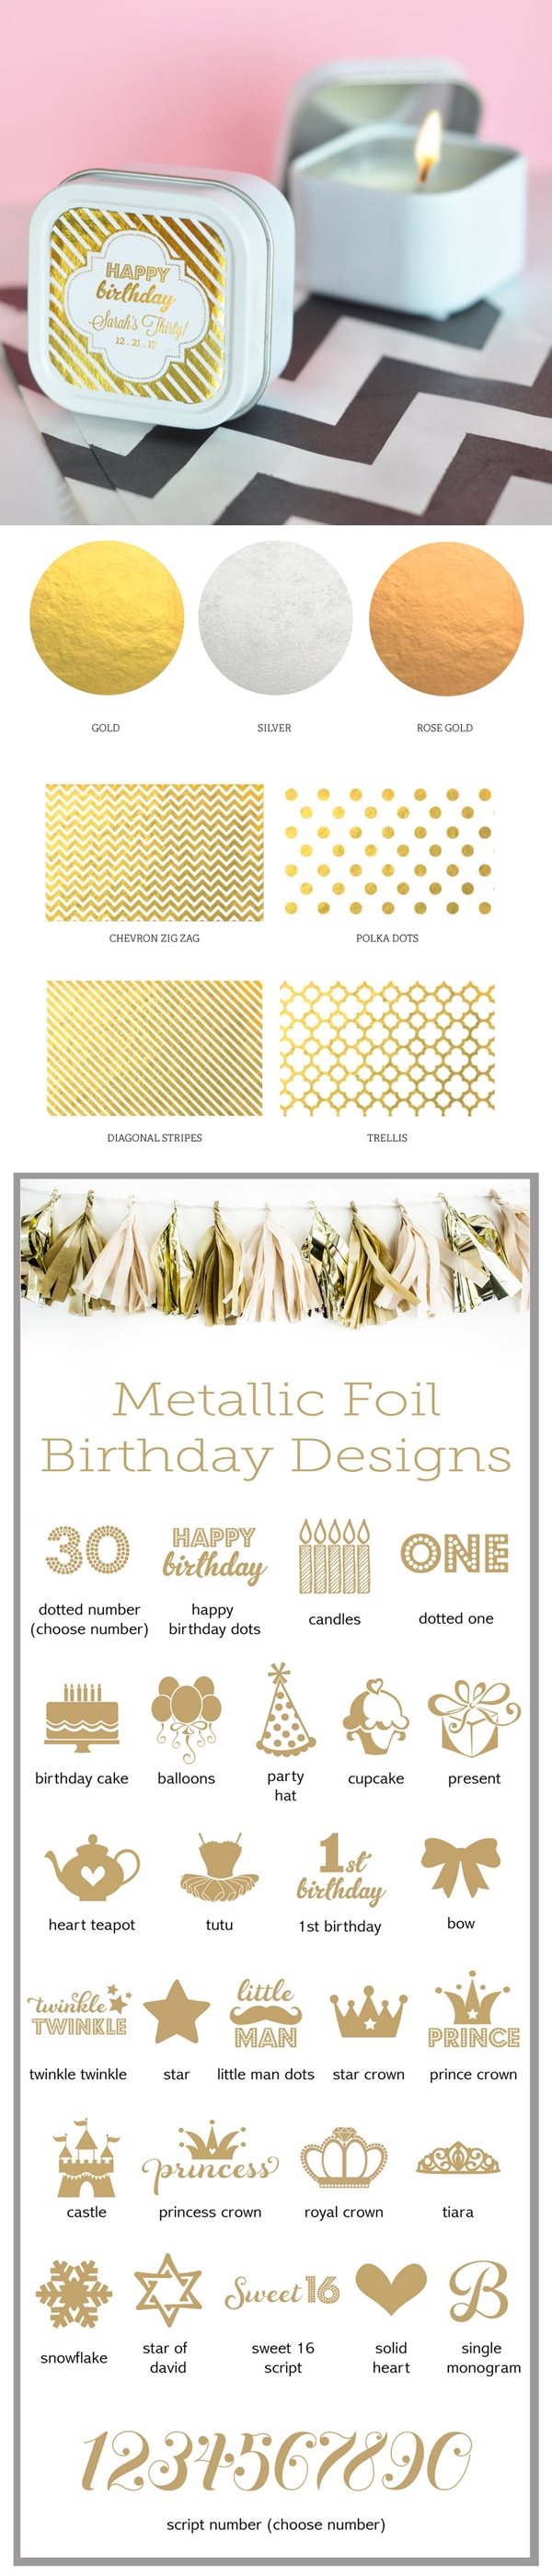 Personalized Metallic Foil Birthday Square Candle Tins